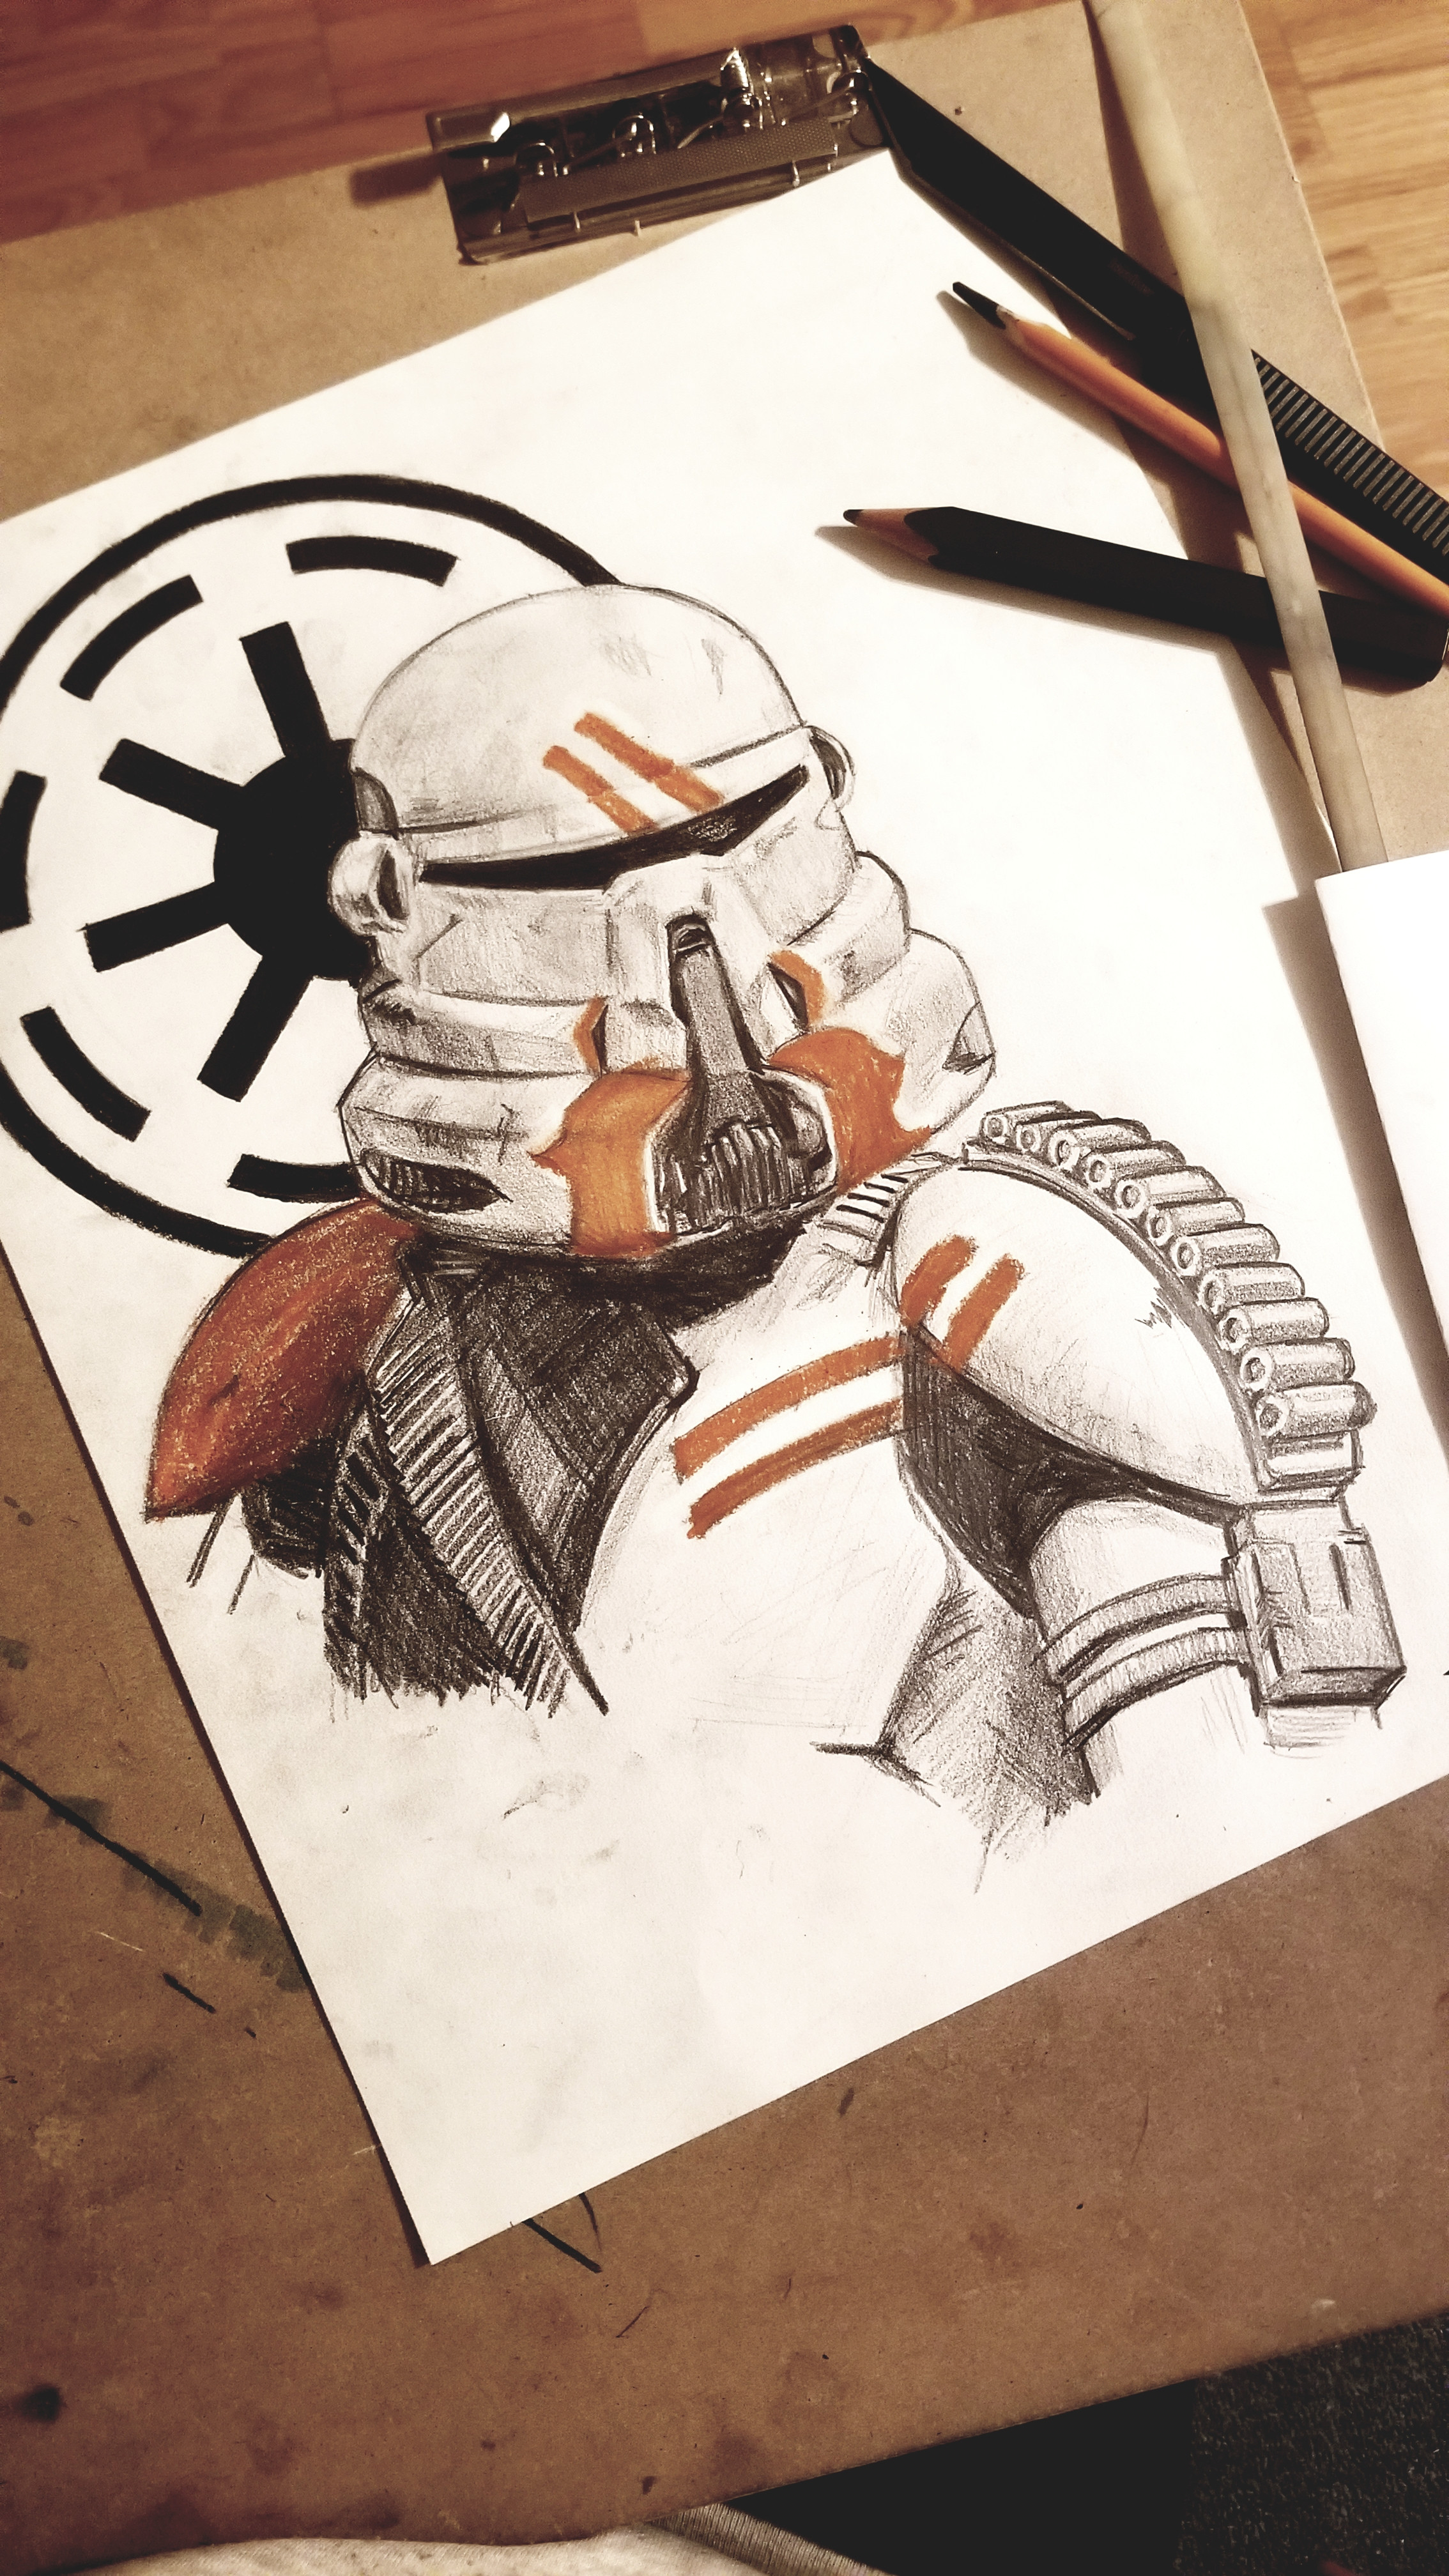 Probably my favorite trooper helmet from the Prequels.